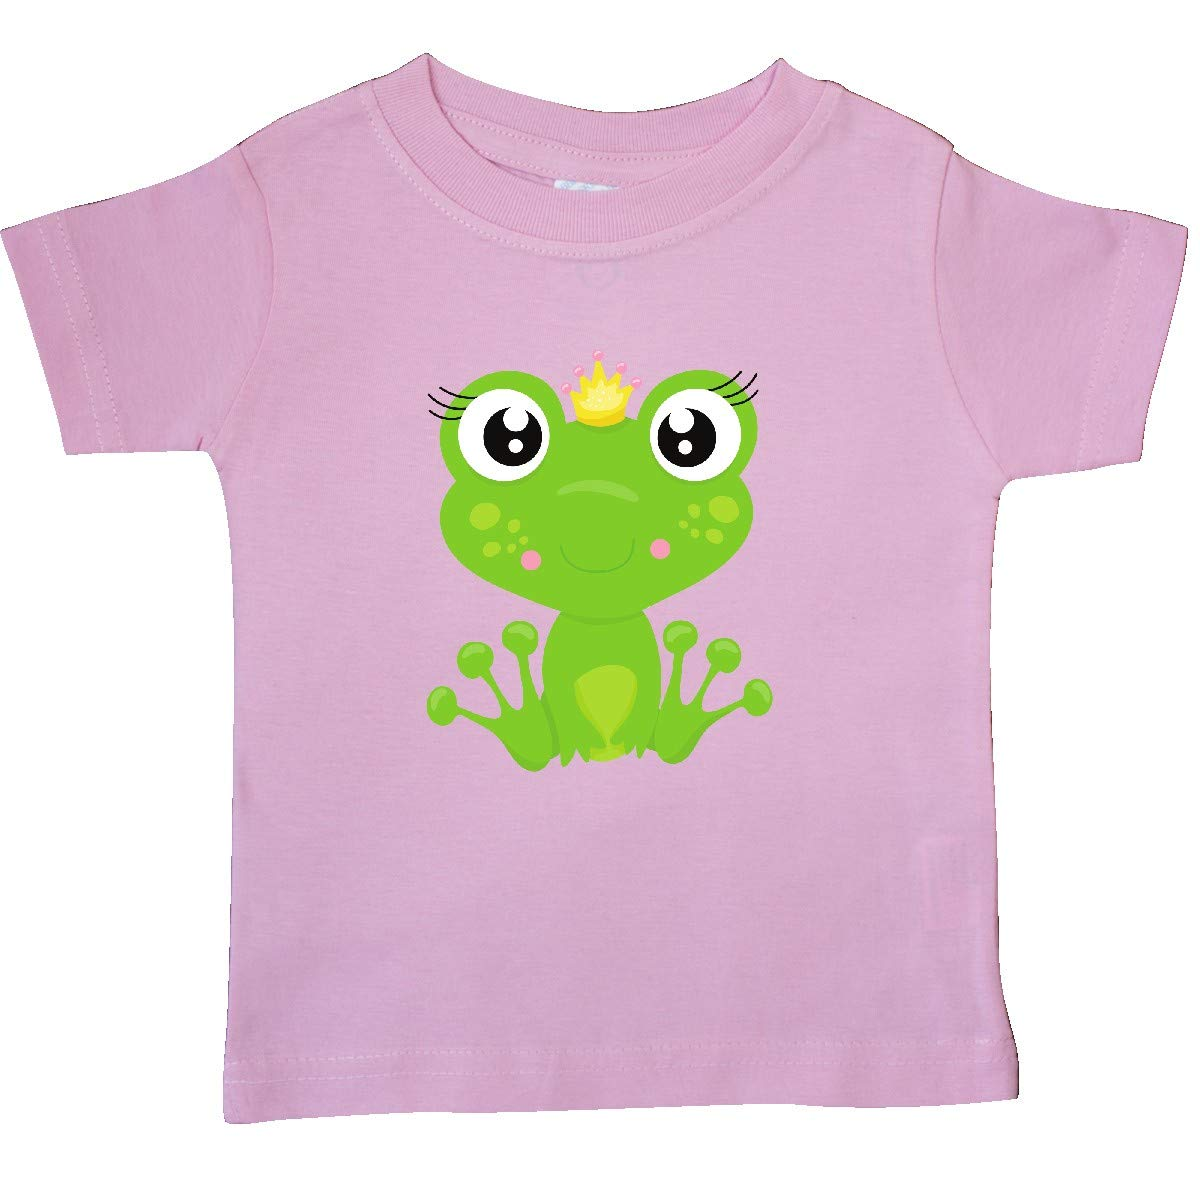 Frog Wearing a Crown Baby T-Shirt Girl Frog inktastic Frog Princess